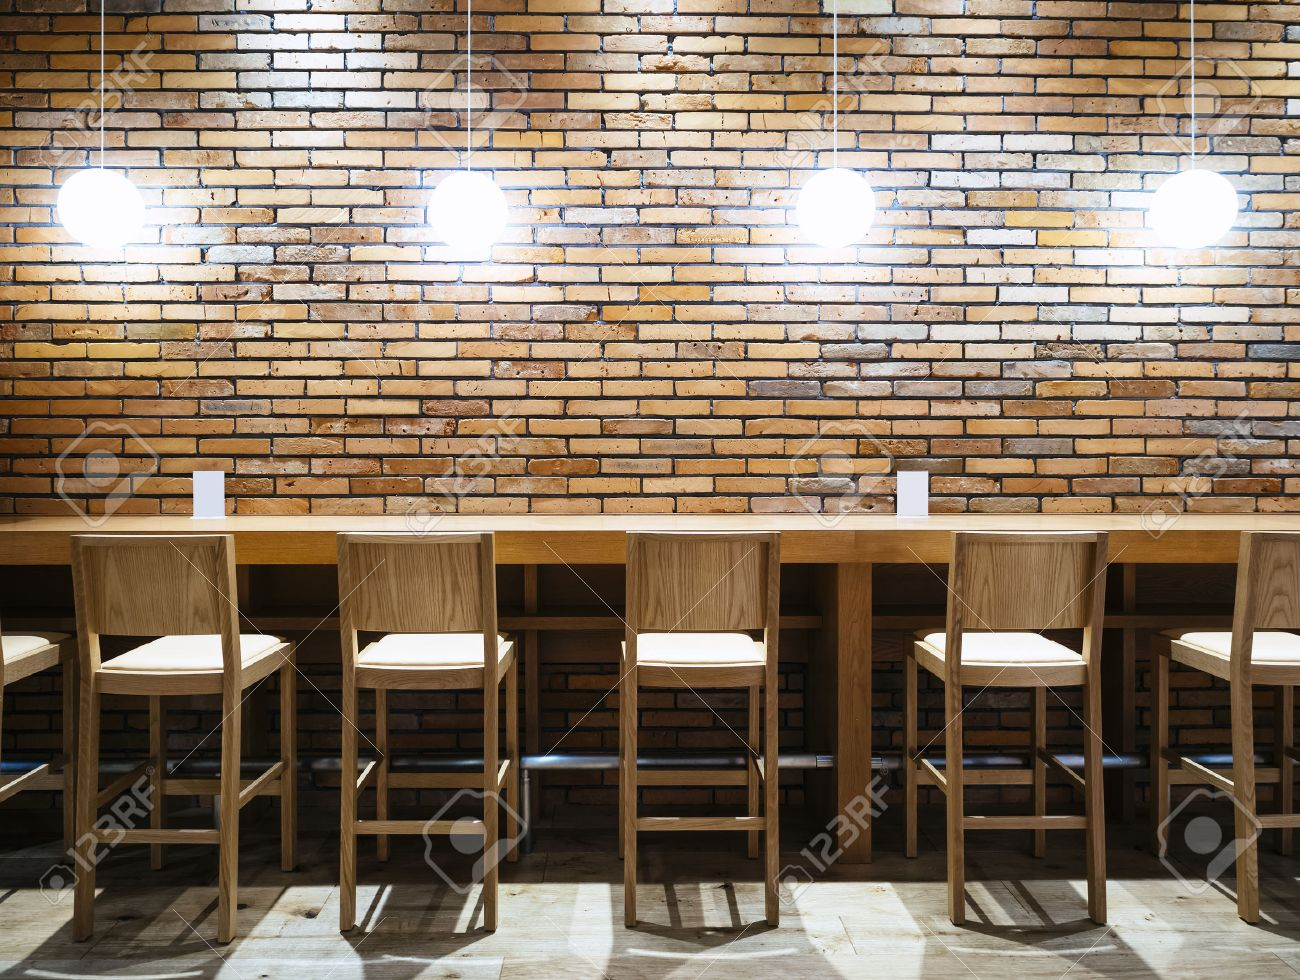 Table Counter Bar With Chairs And Lights Brick Wall Background Stock Photo Picture And Royalty Free Image Image 50986789